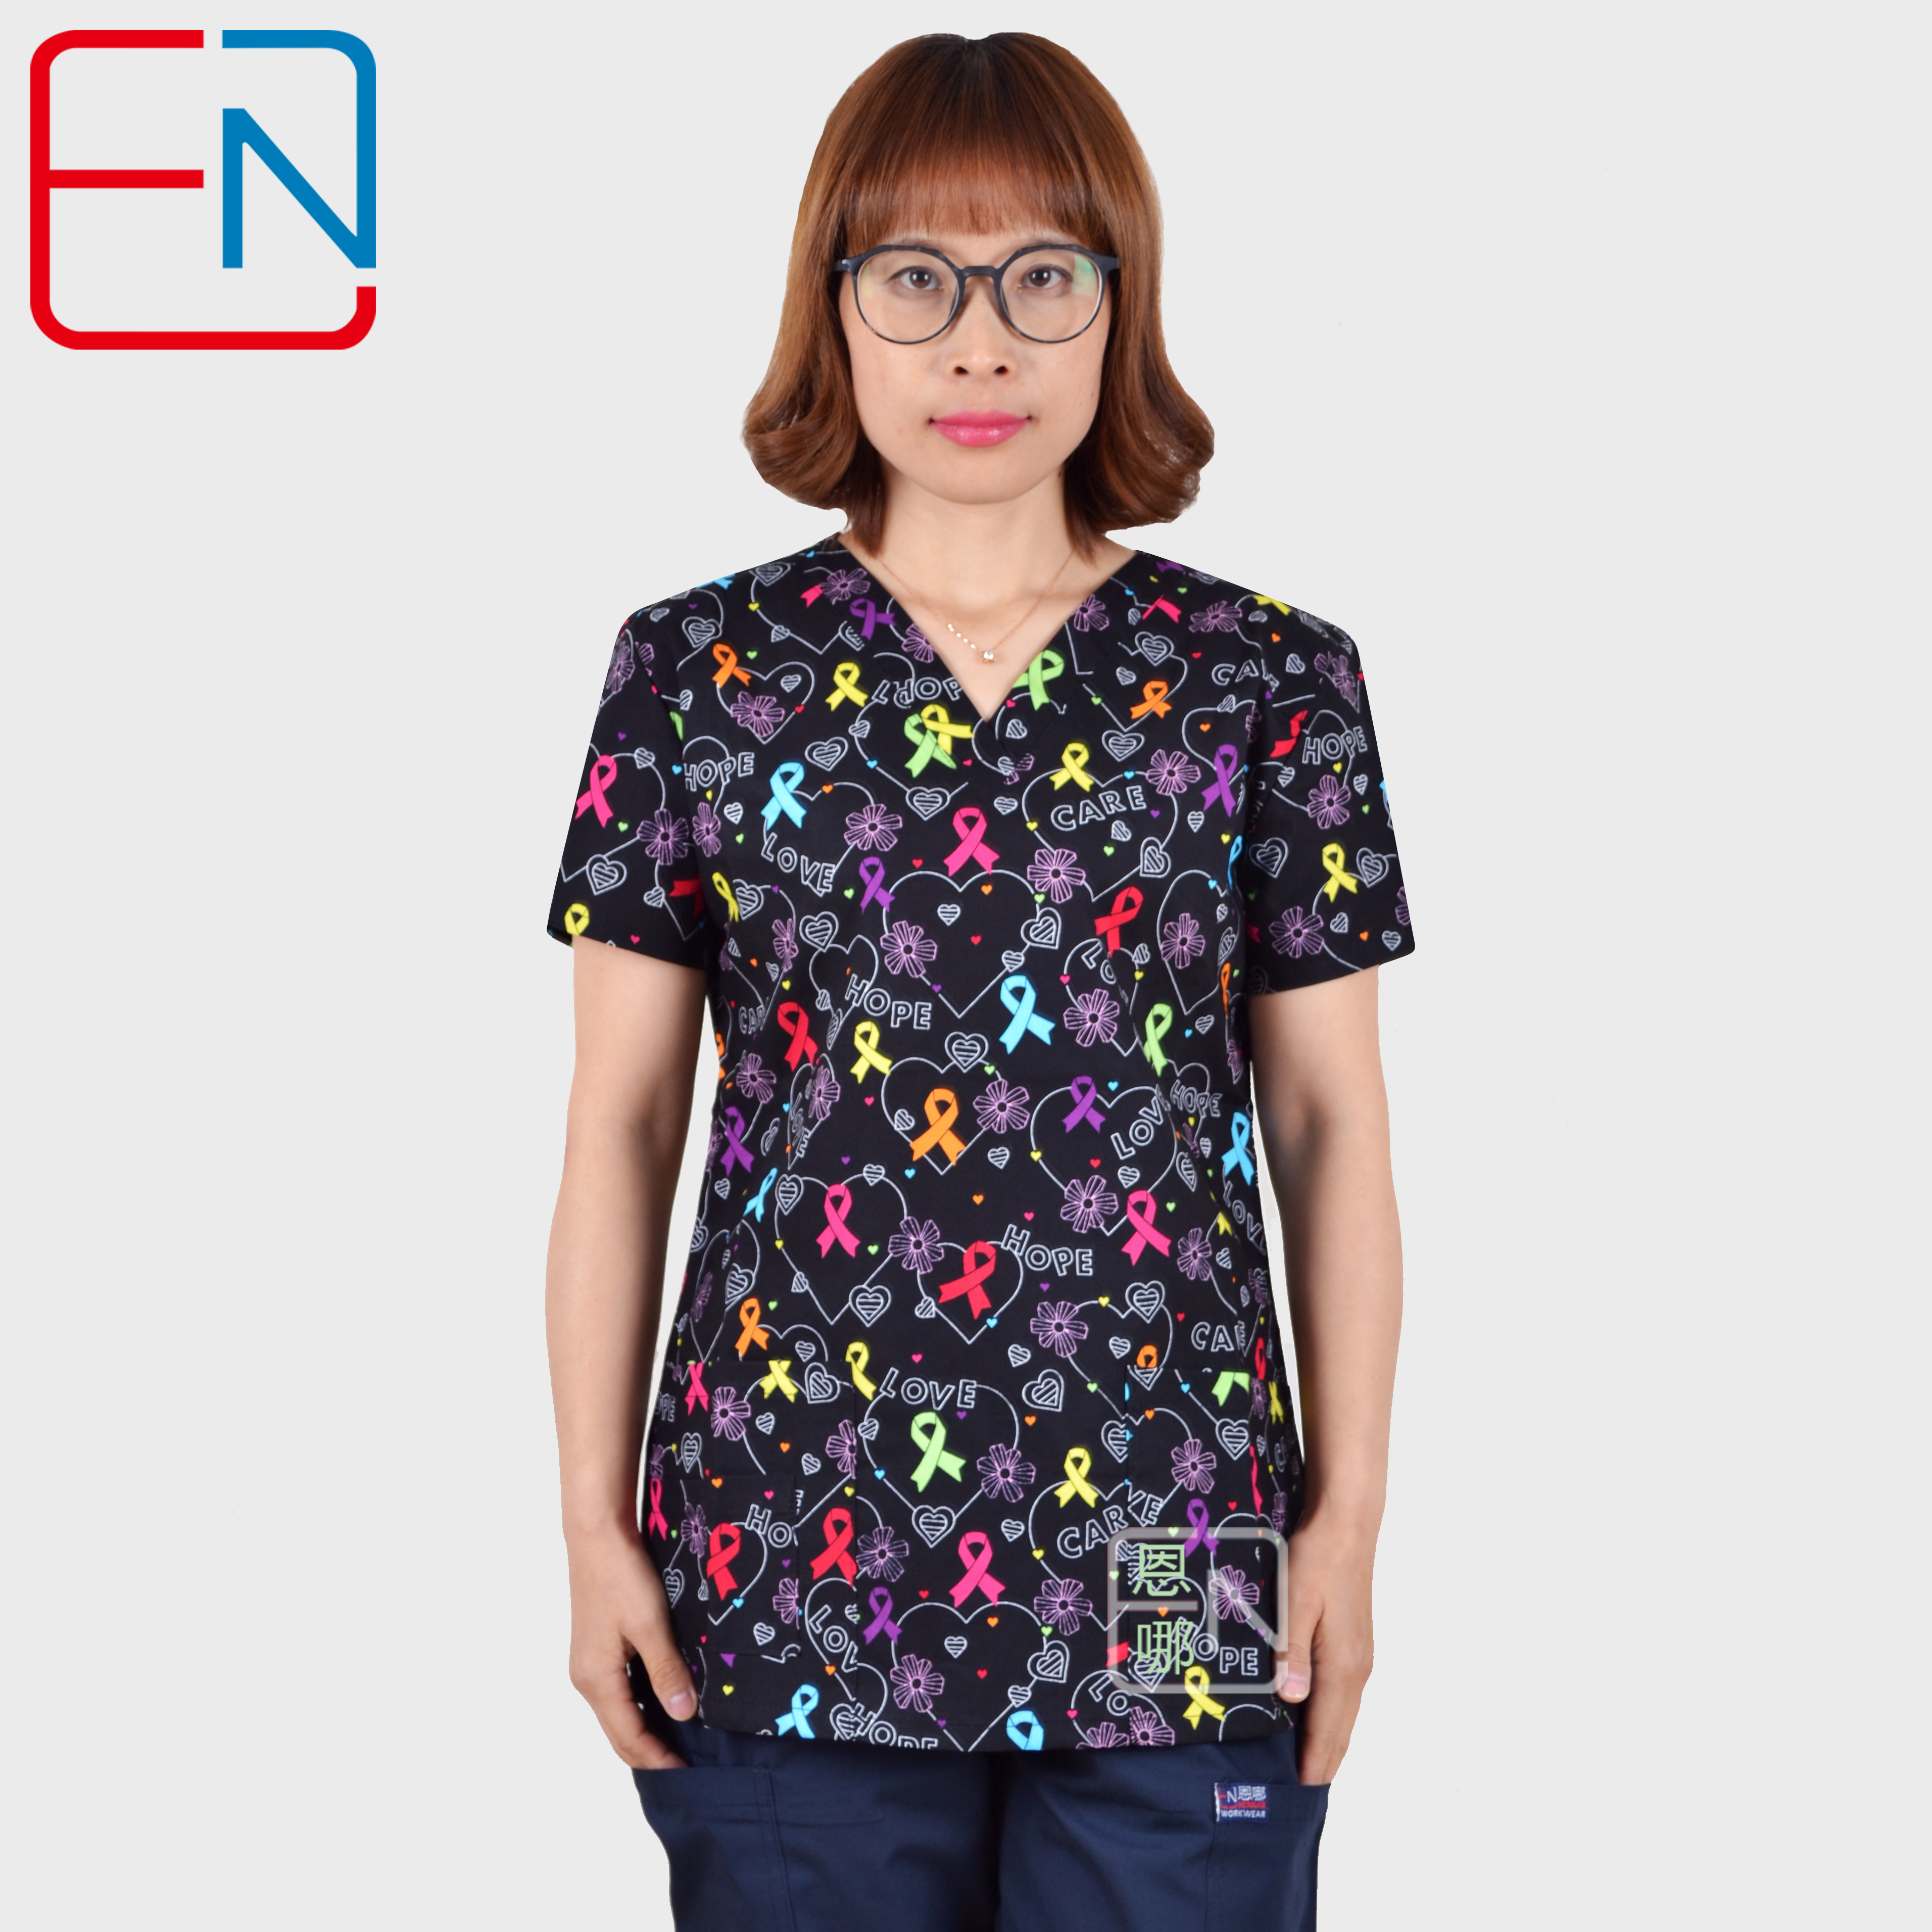 Hennar Women Medical Uniforms V-Neck Cartoon Print Clinical Scrub Top Short Sleeve 100% Cotton Hospital Surgical Scrubs Top